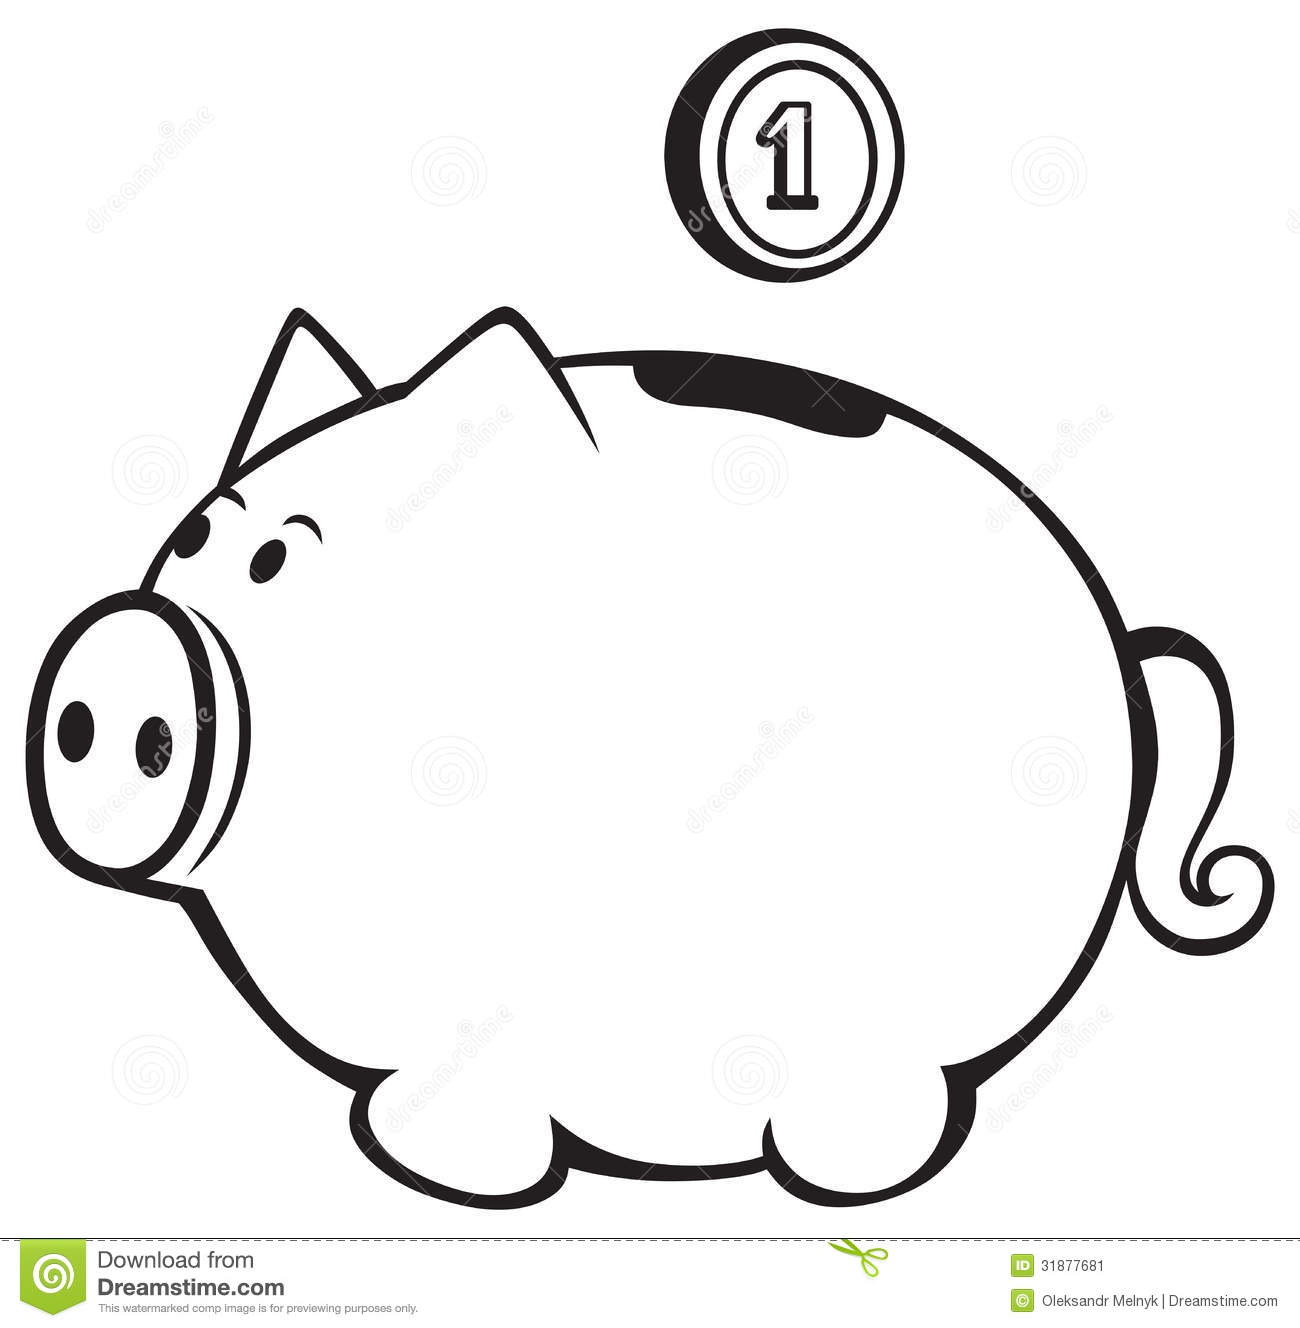 Banking Clipart